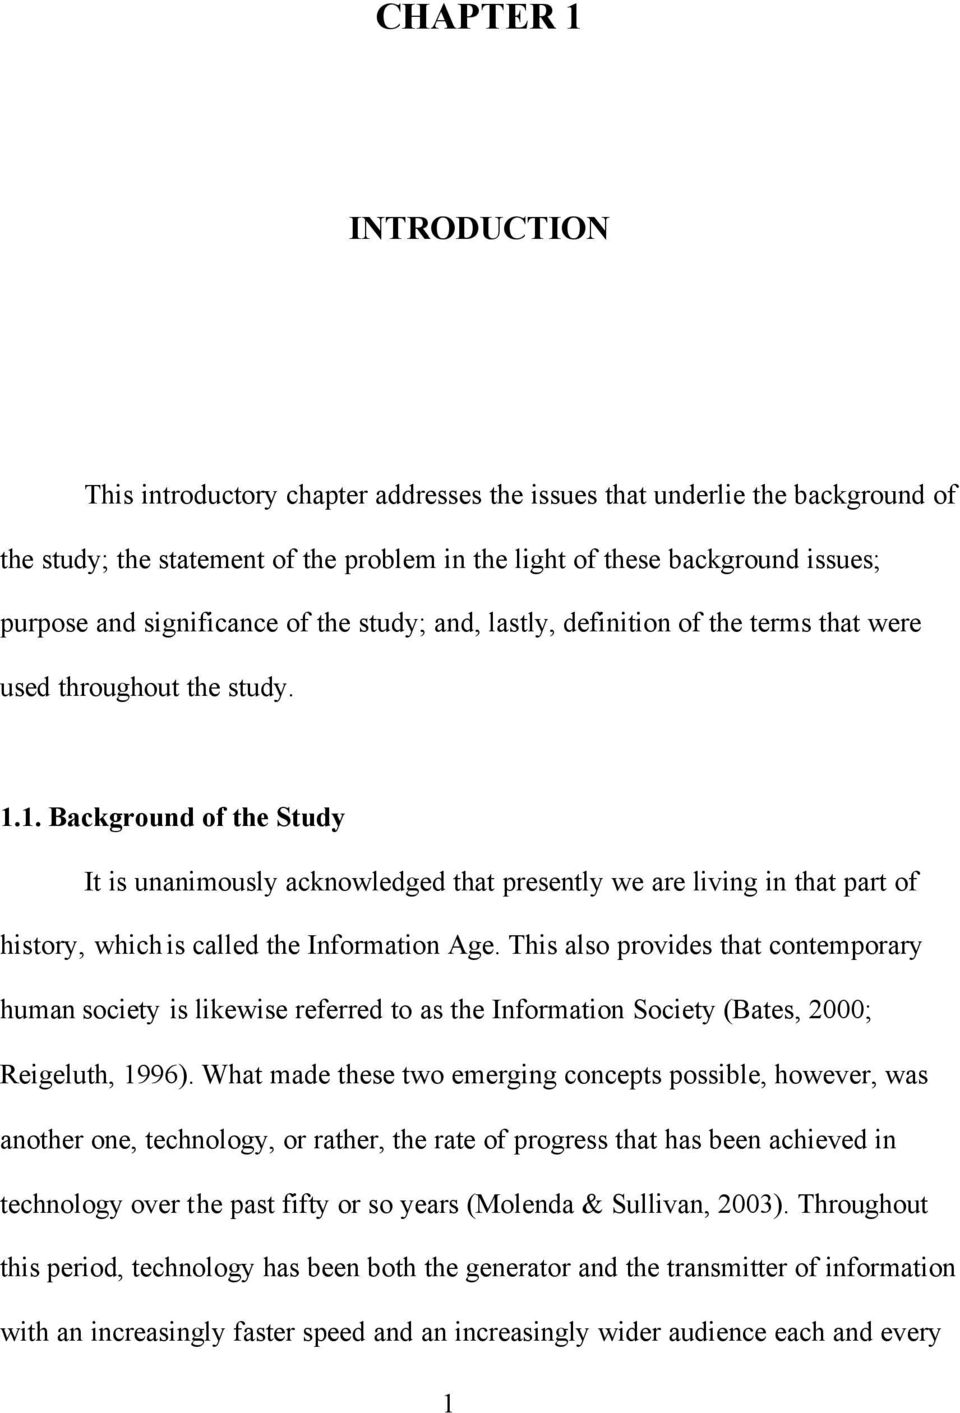 1. Background of the Study It is unanimously acknowledged that presently we are living in that part of history, which is called the Information Age.